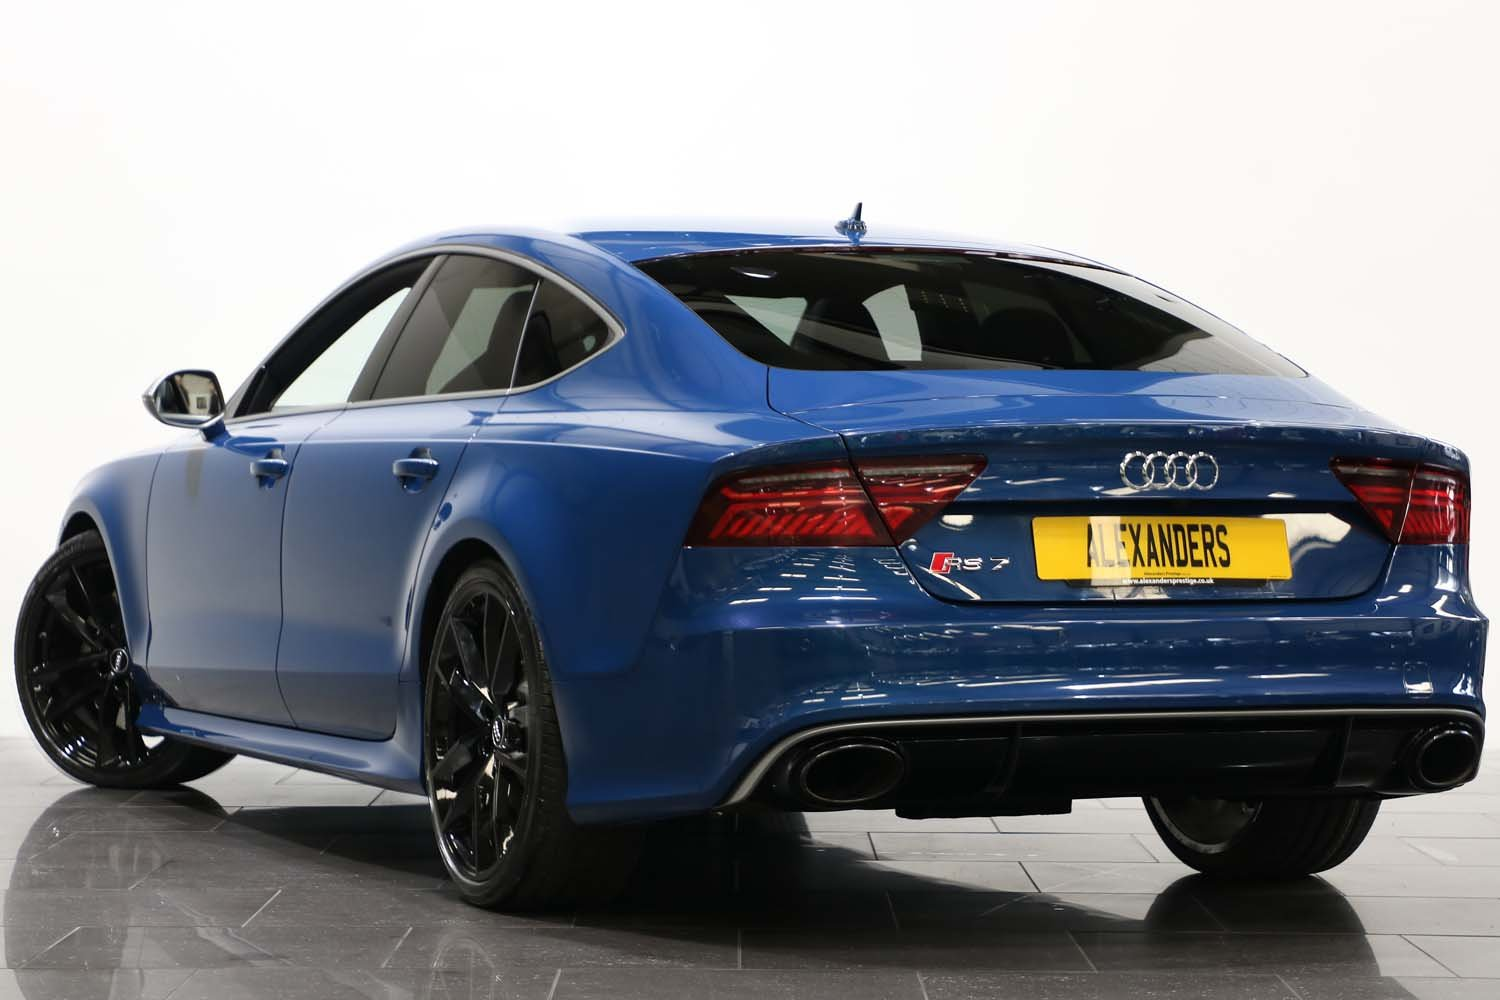 2016 66 AUDI RS7 PERFORMANCE SPORTBACK 4.0 TFSI QUATTRO S TRONIC For Sale (picture 2 of 6)